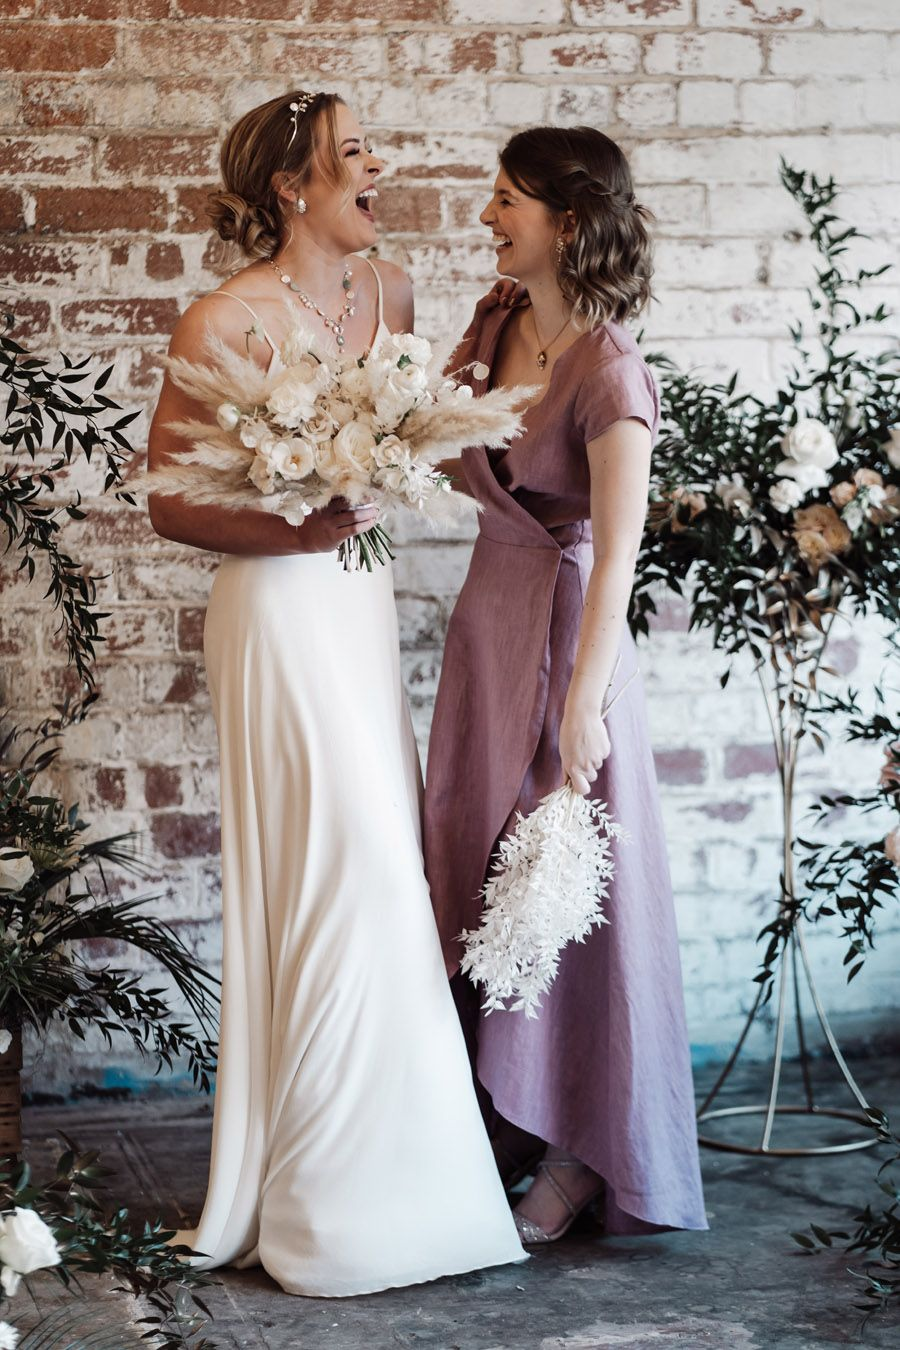 new ethical bridesmaids' outfits by Luna Bride in